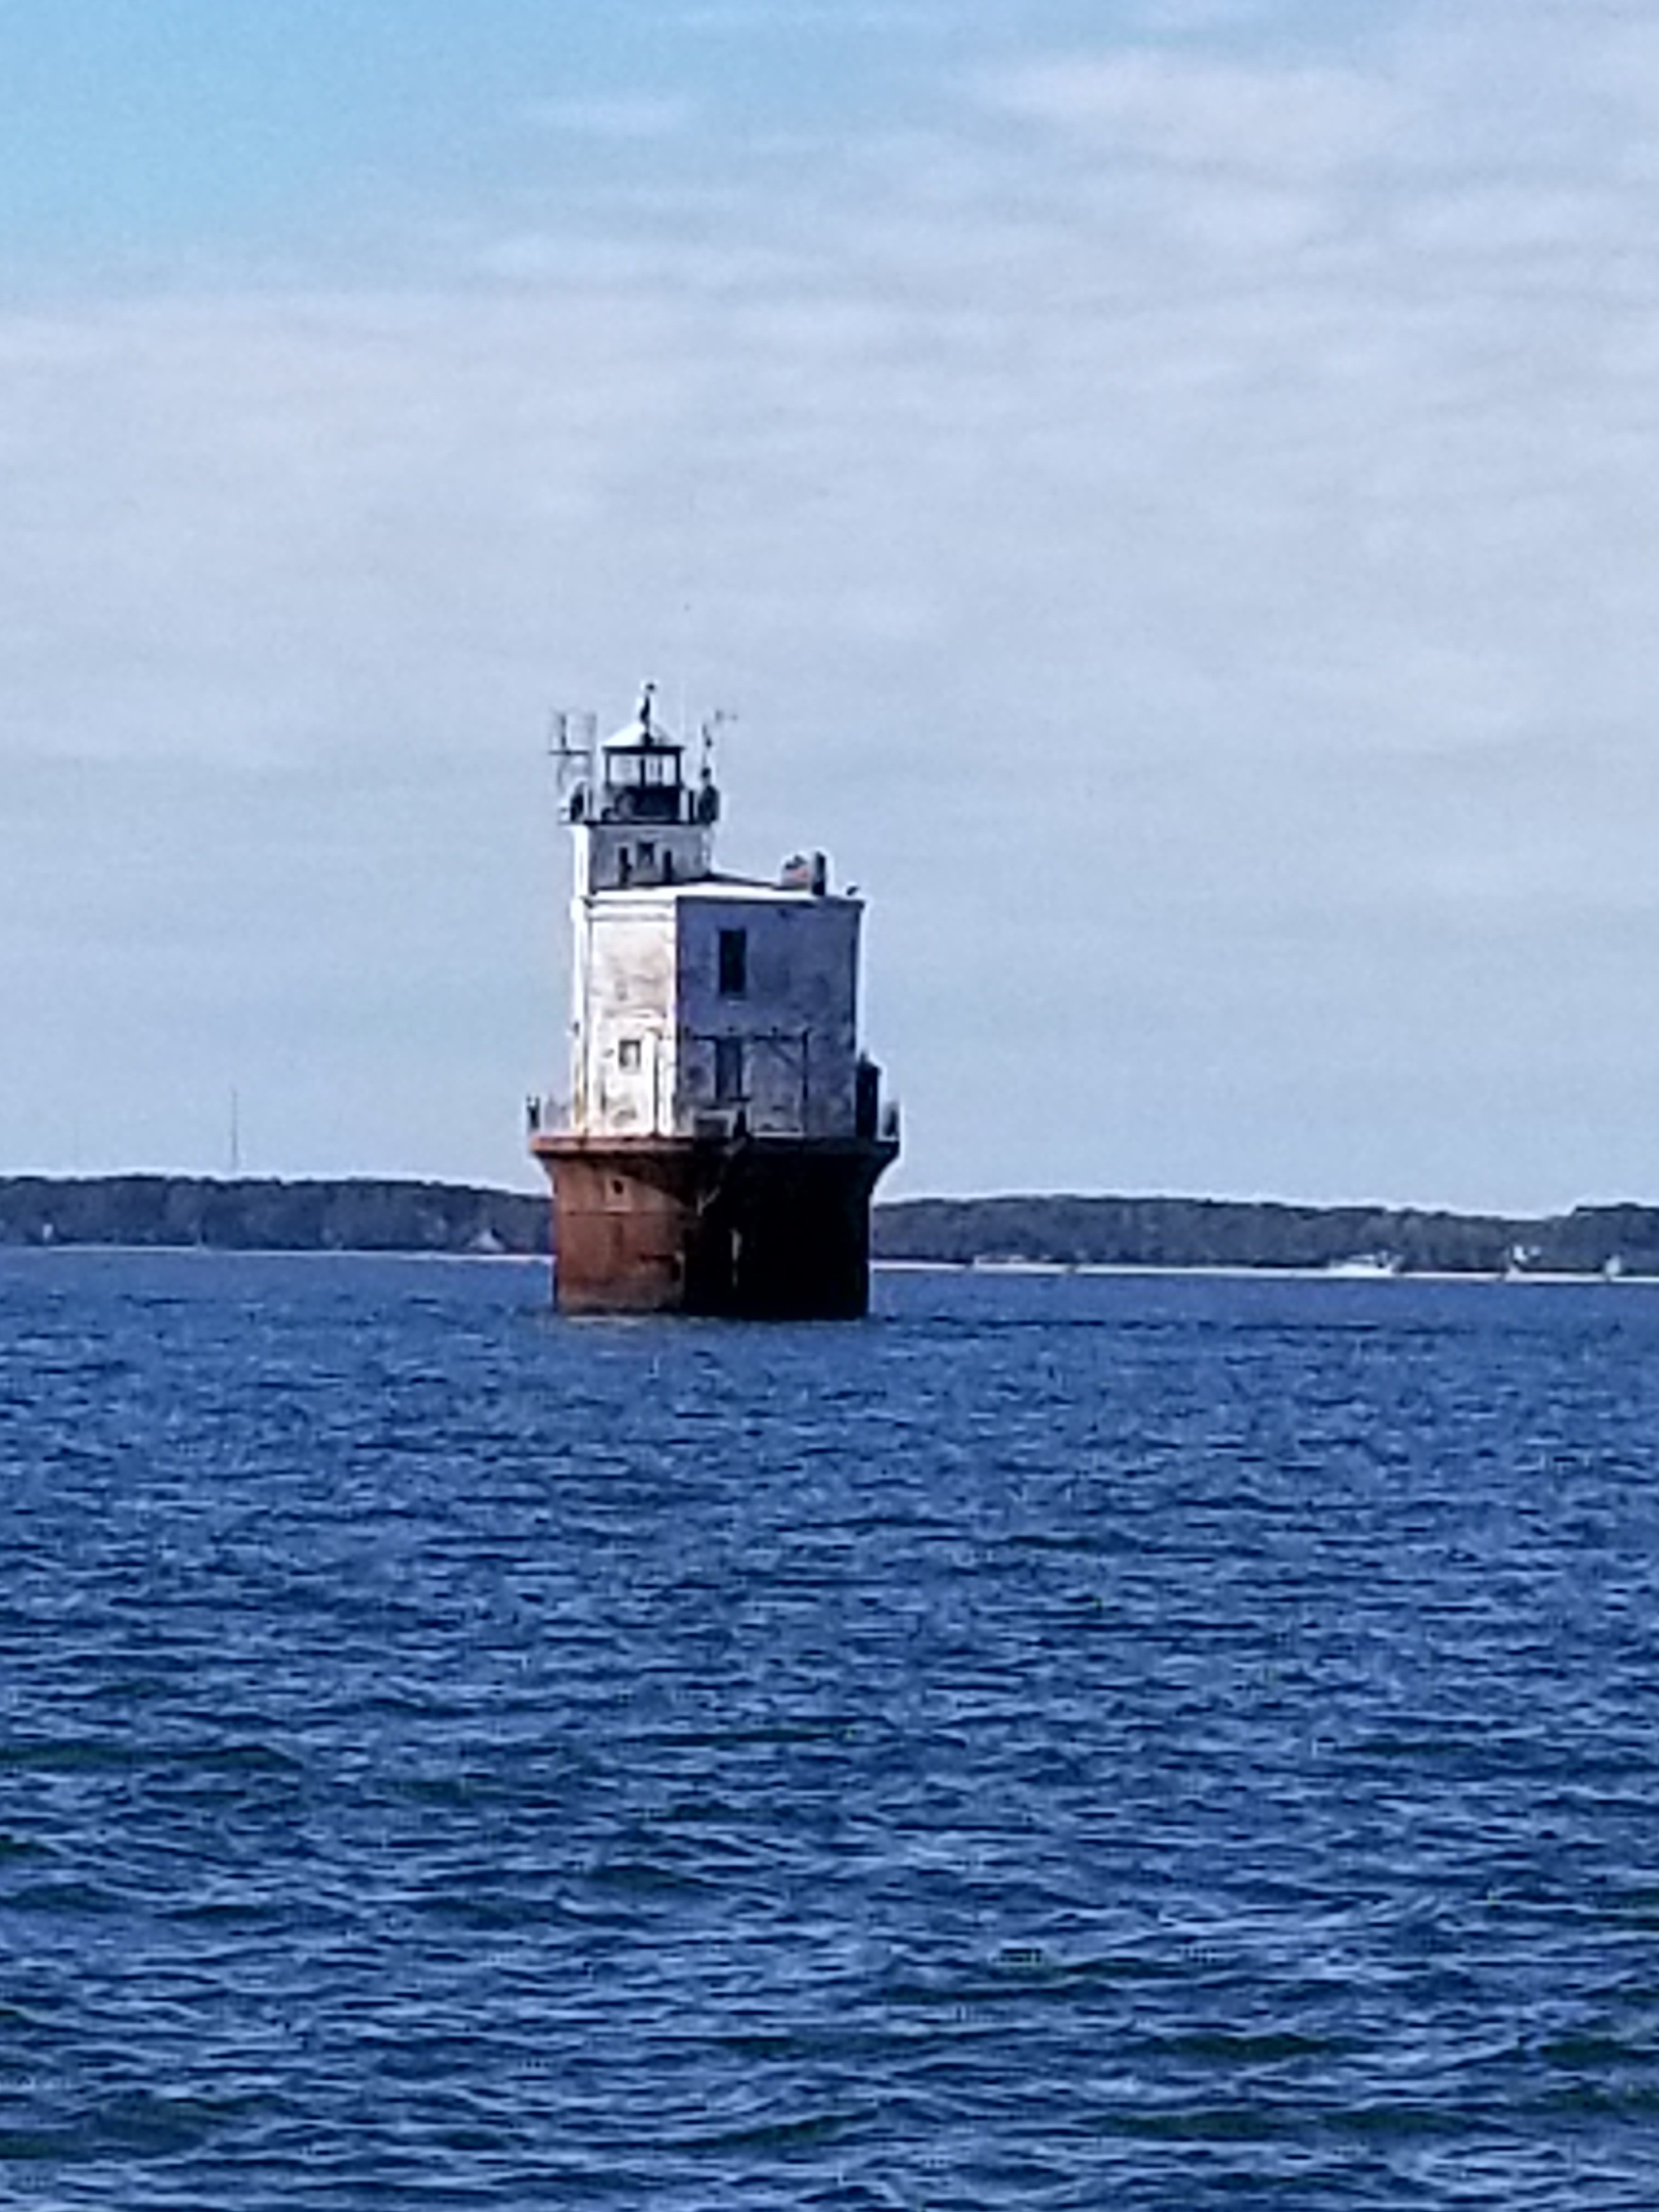 Smith Point Light, on the southern shore of the Potomac River in Virginia.